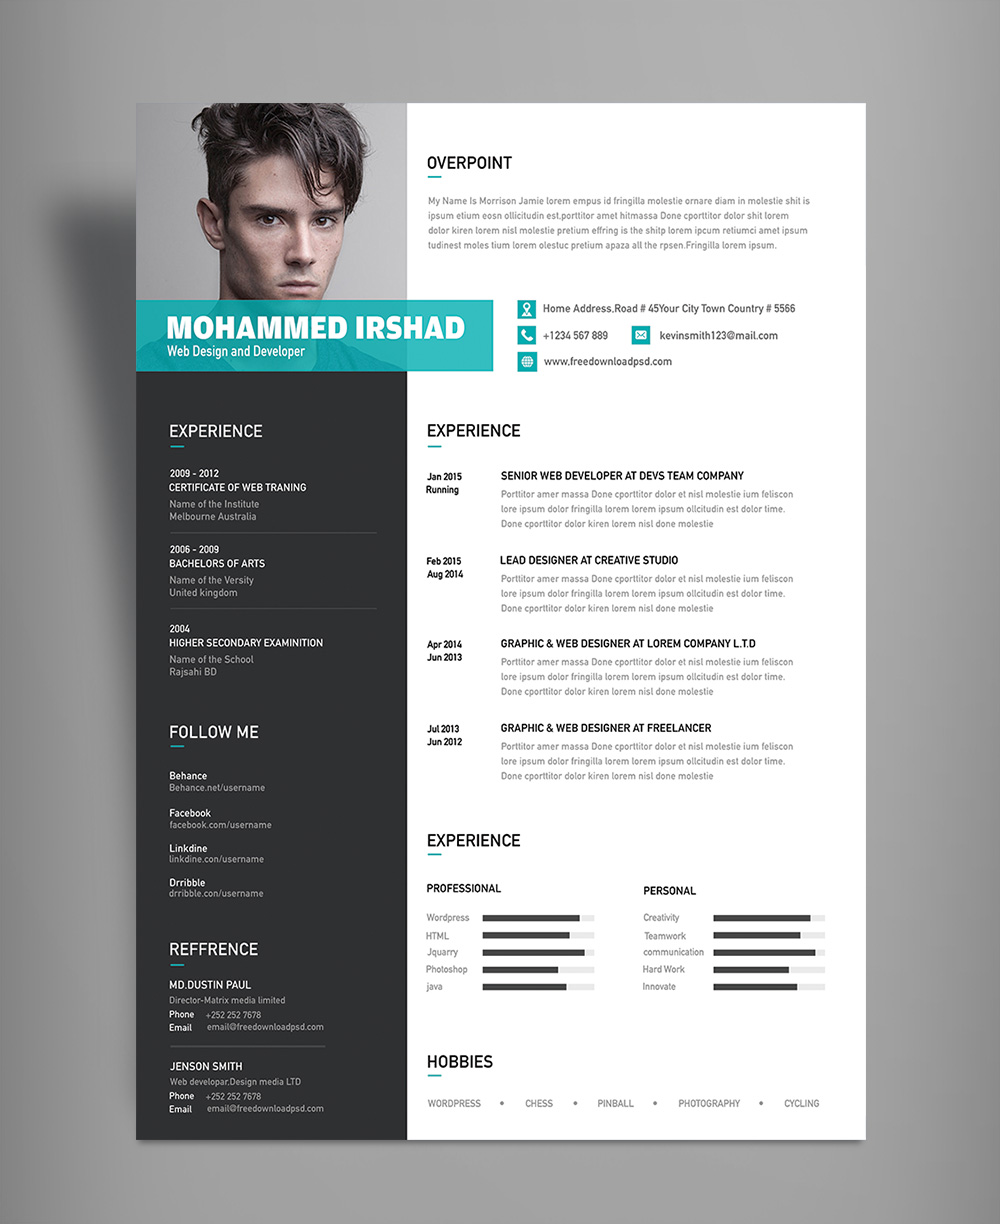 modern resume cv design template psd file good resume modern resume cv design template psd file